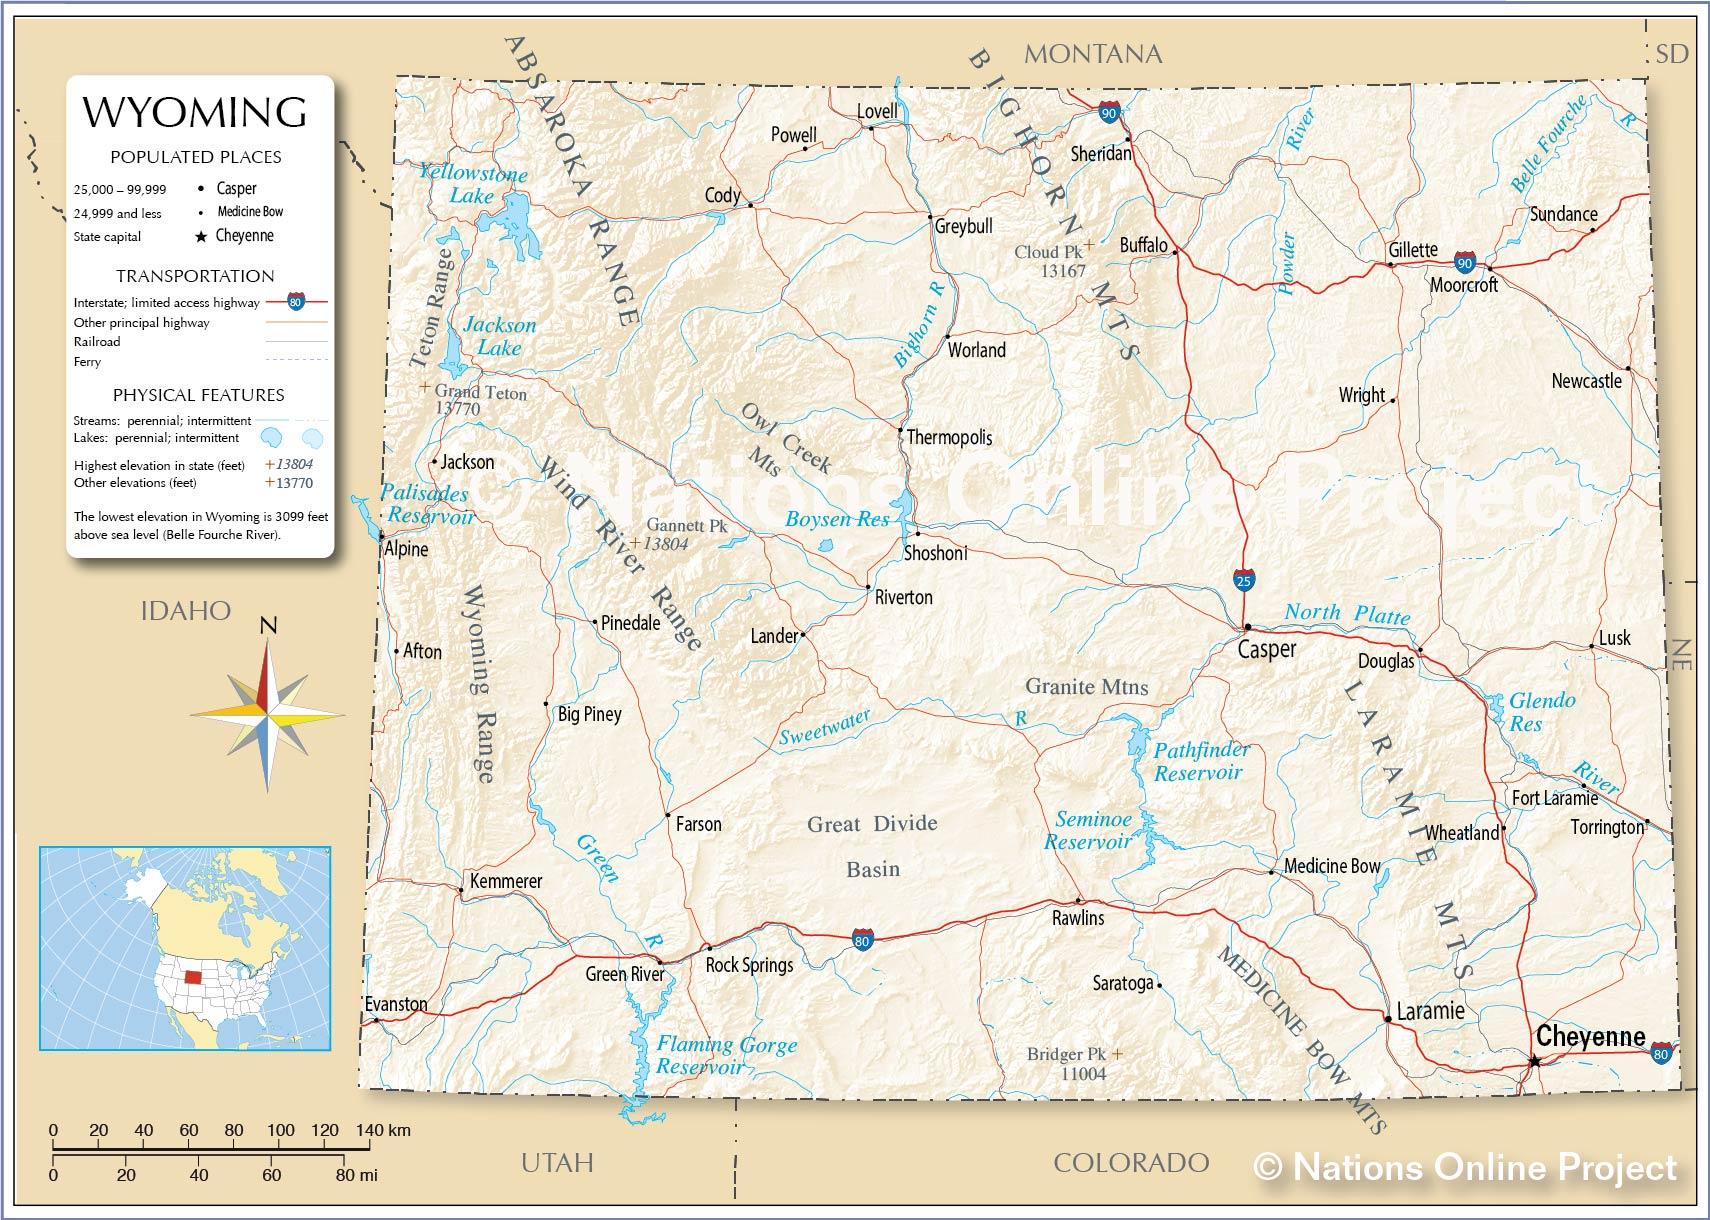 Reference Map Of Wyoming USA Nations Online Project - Maps wyoming